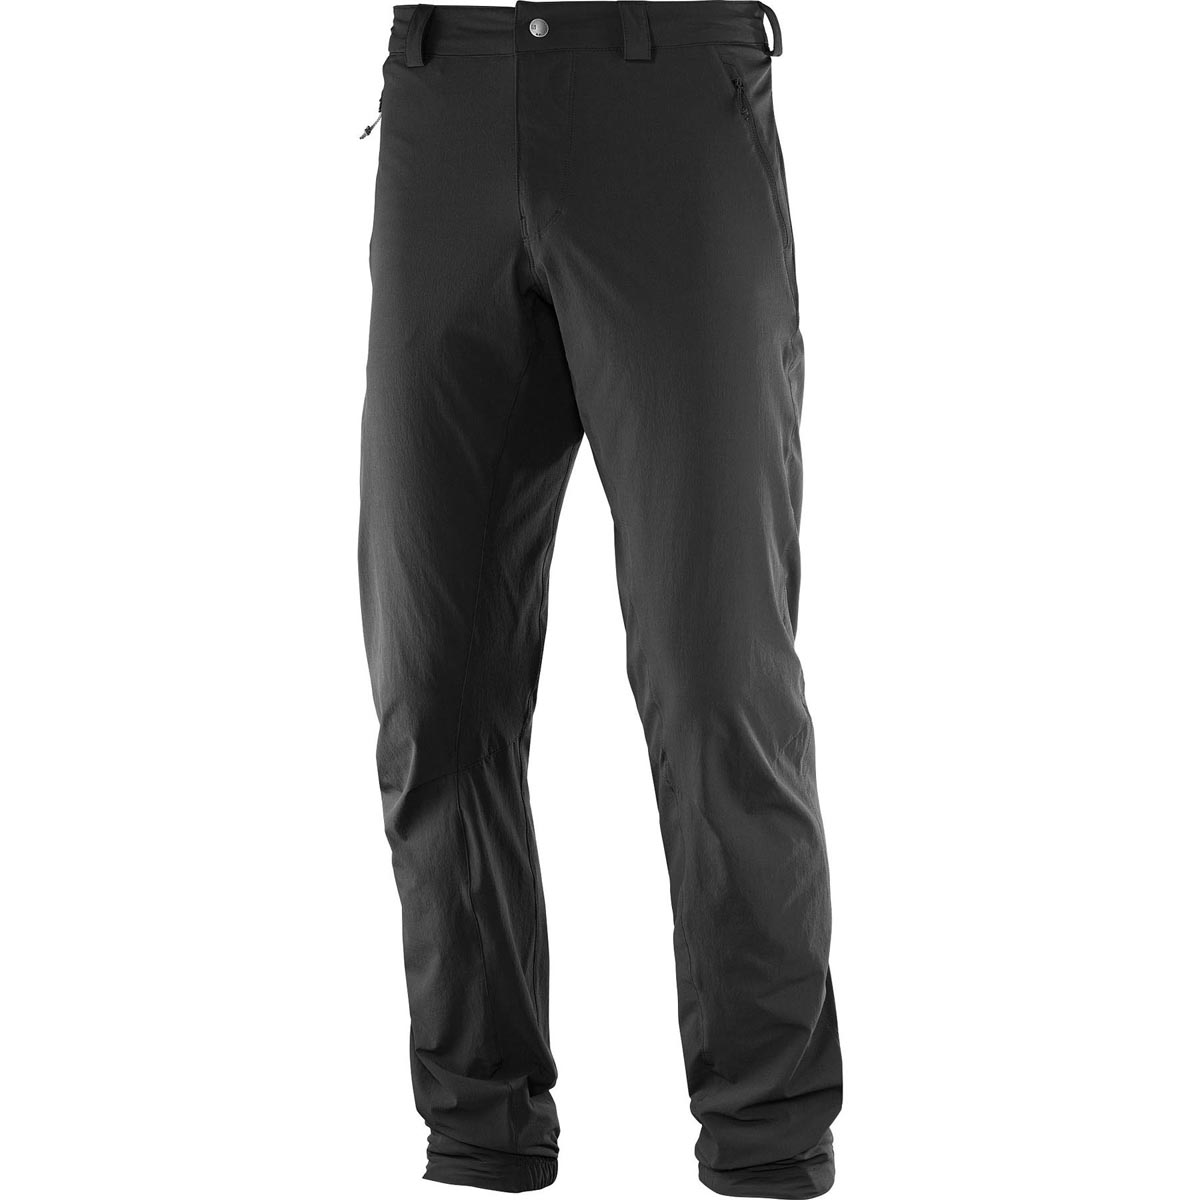 Брюки WAYFARER INCLINE PANT M